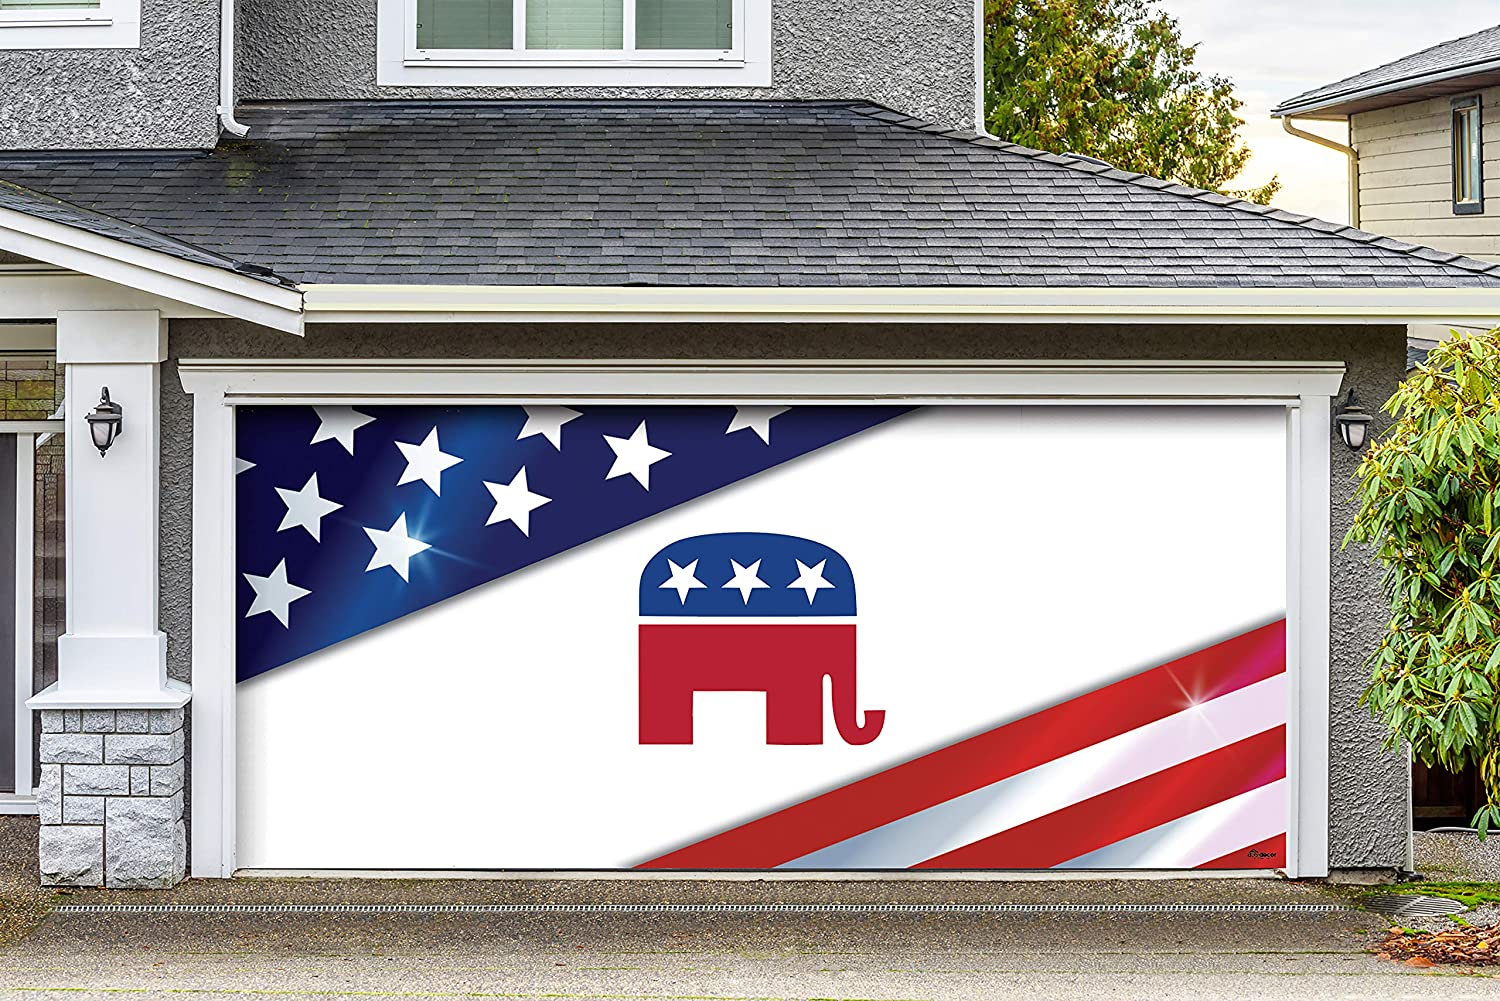 Victory Corps Republican Holiday Garage Door Banner Mural Sign Décor 7 X 16 Car Garage The Original Holiday Garage Door Banner Decor Garden Outdoor